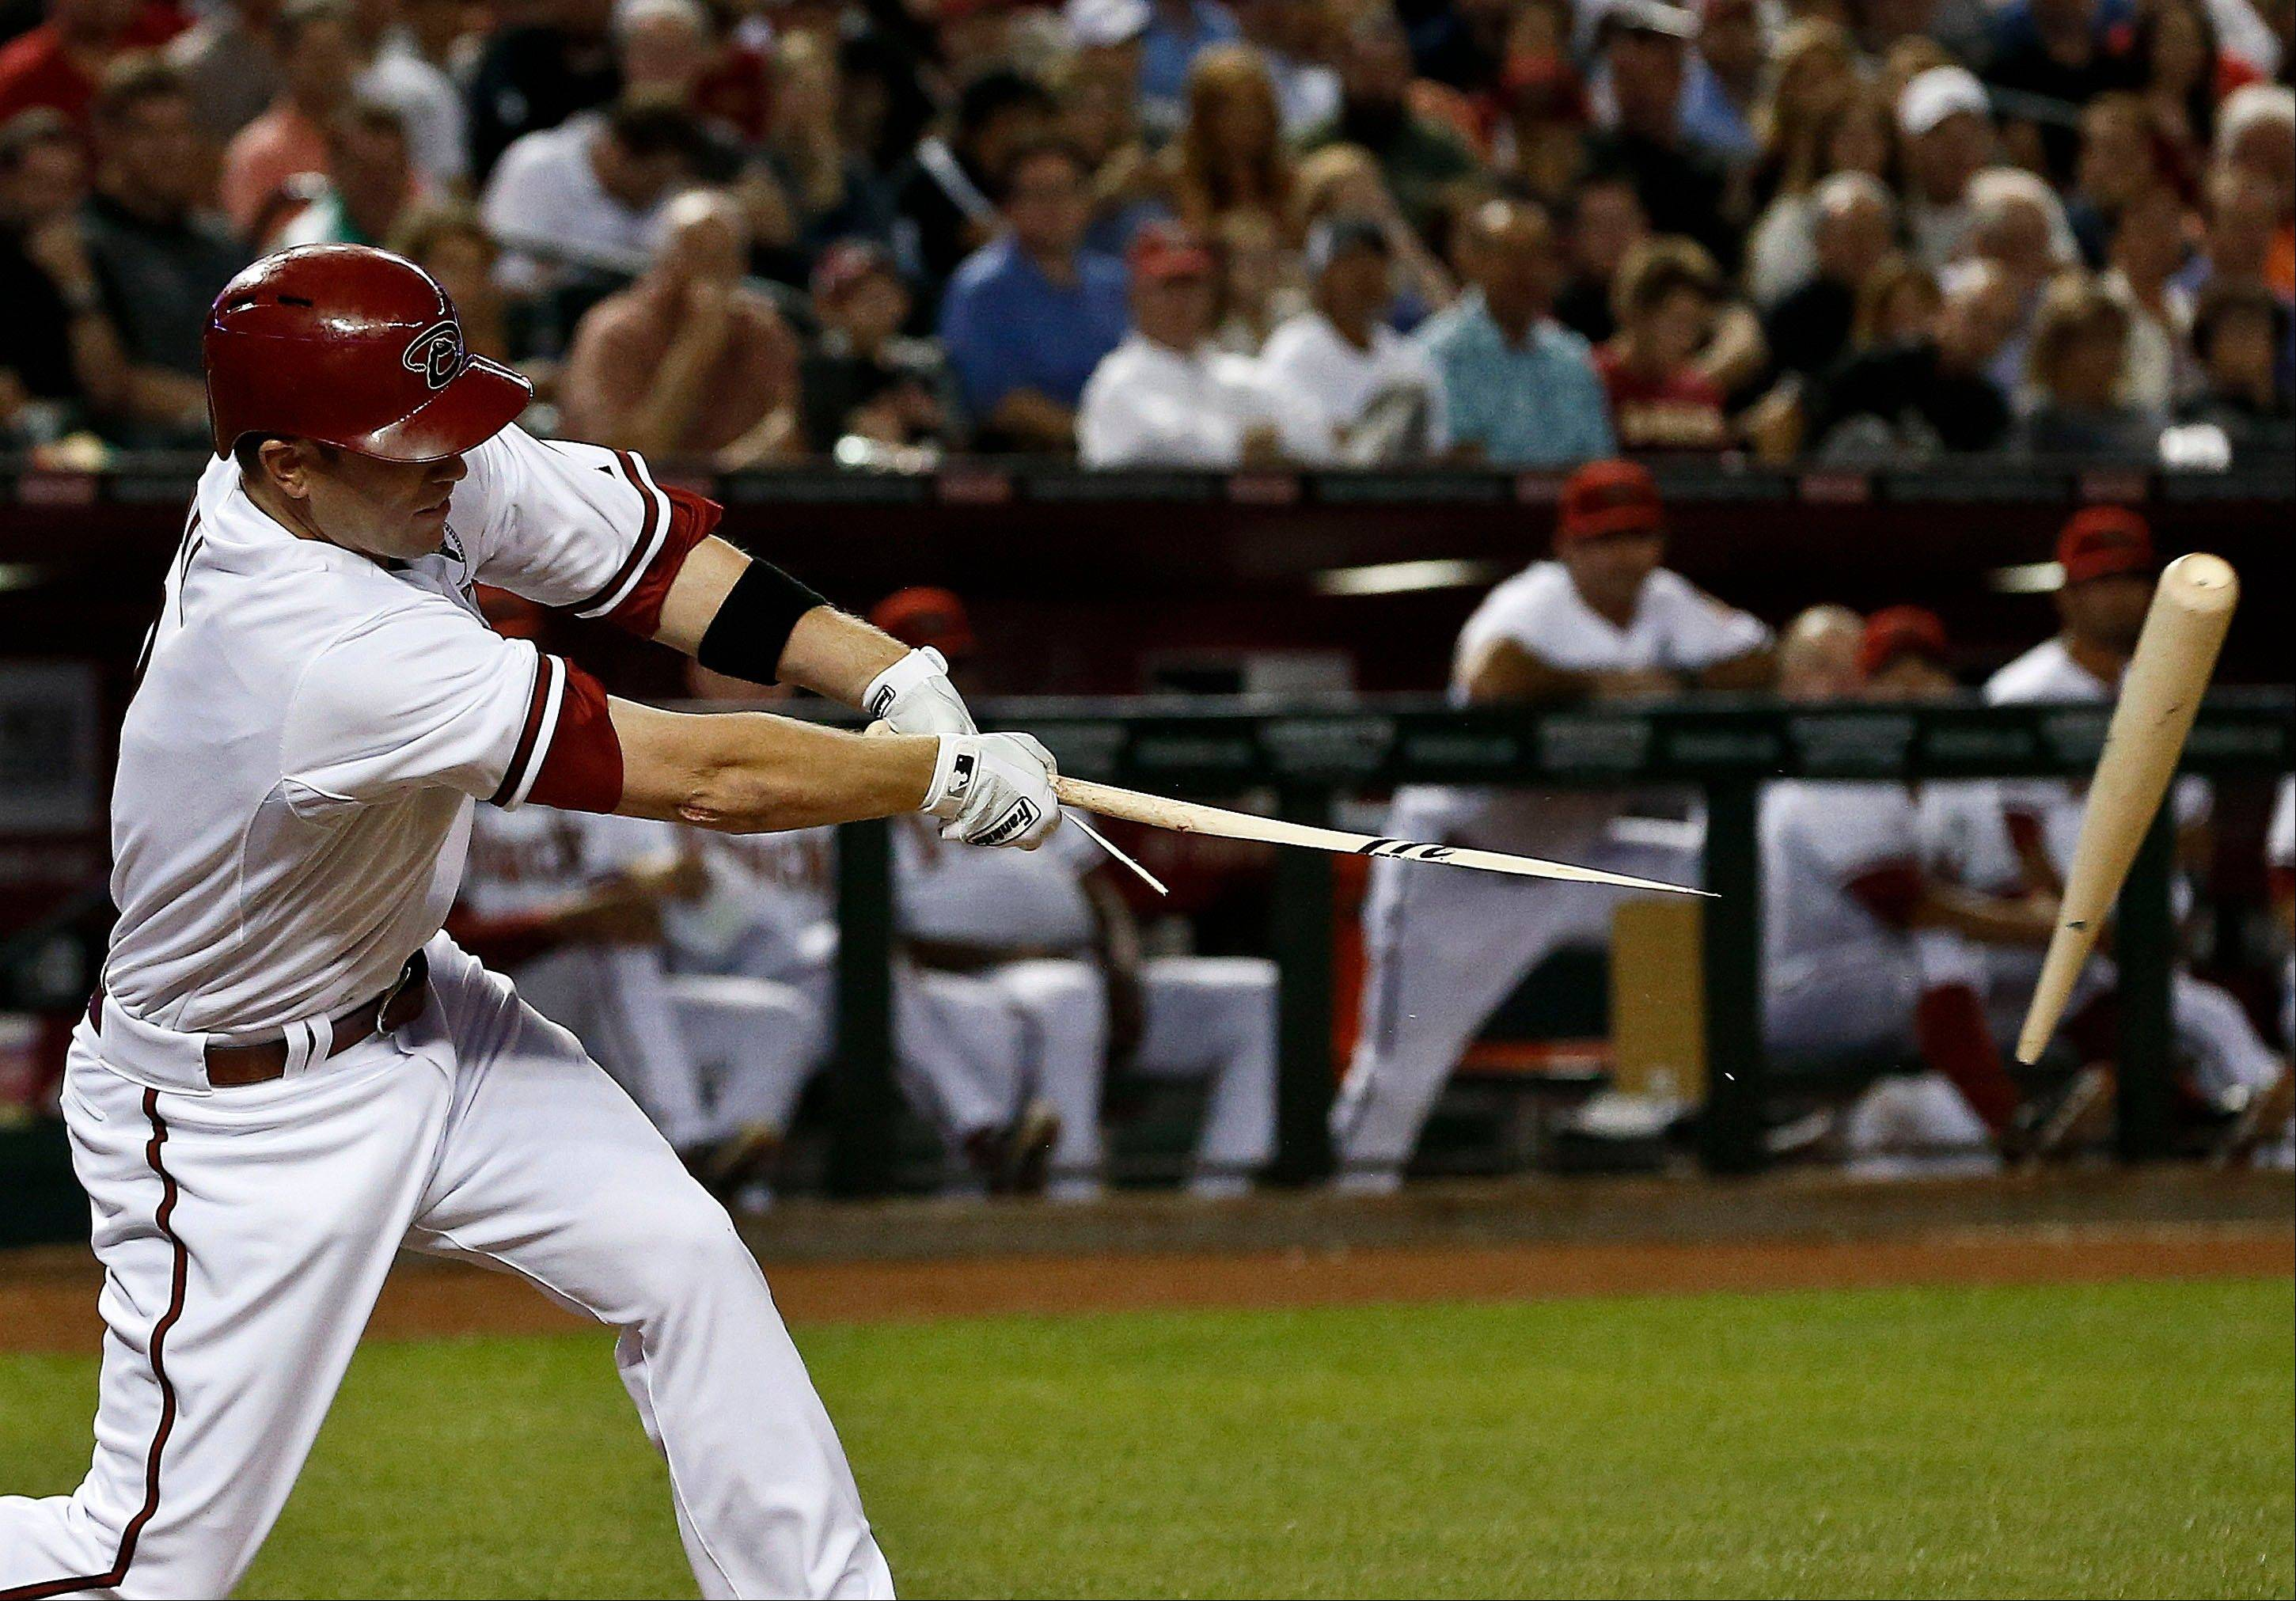 D-backs beat Cardinals 6-2